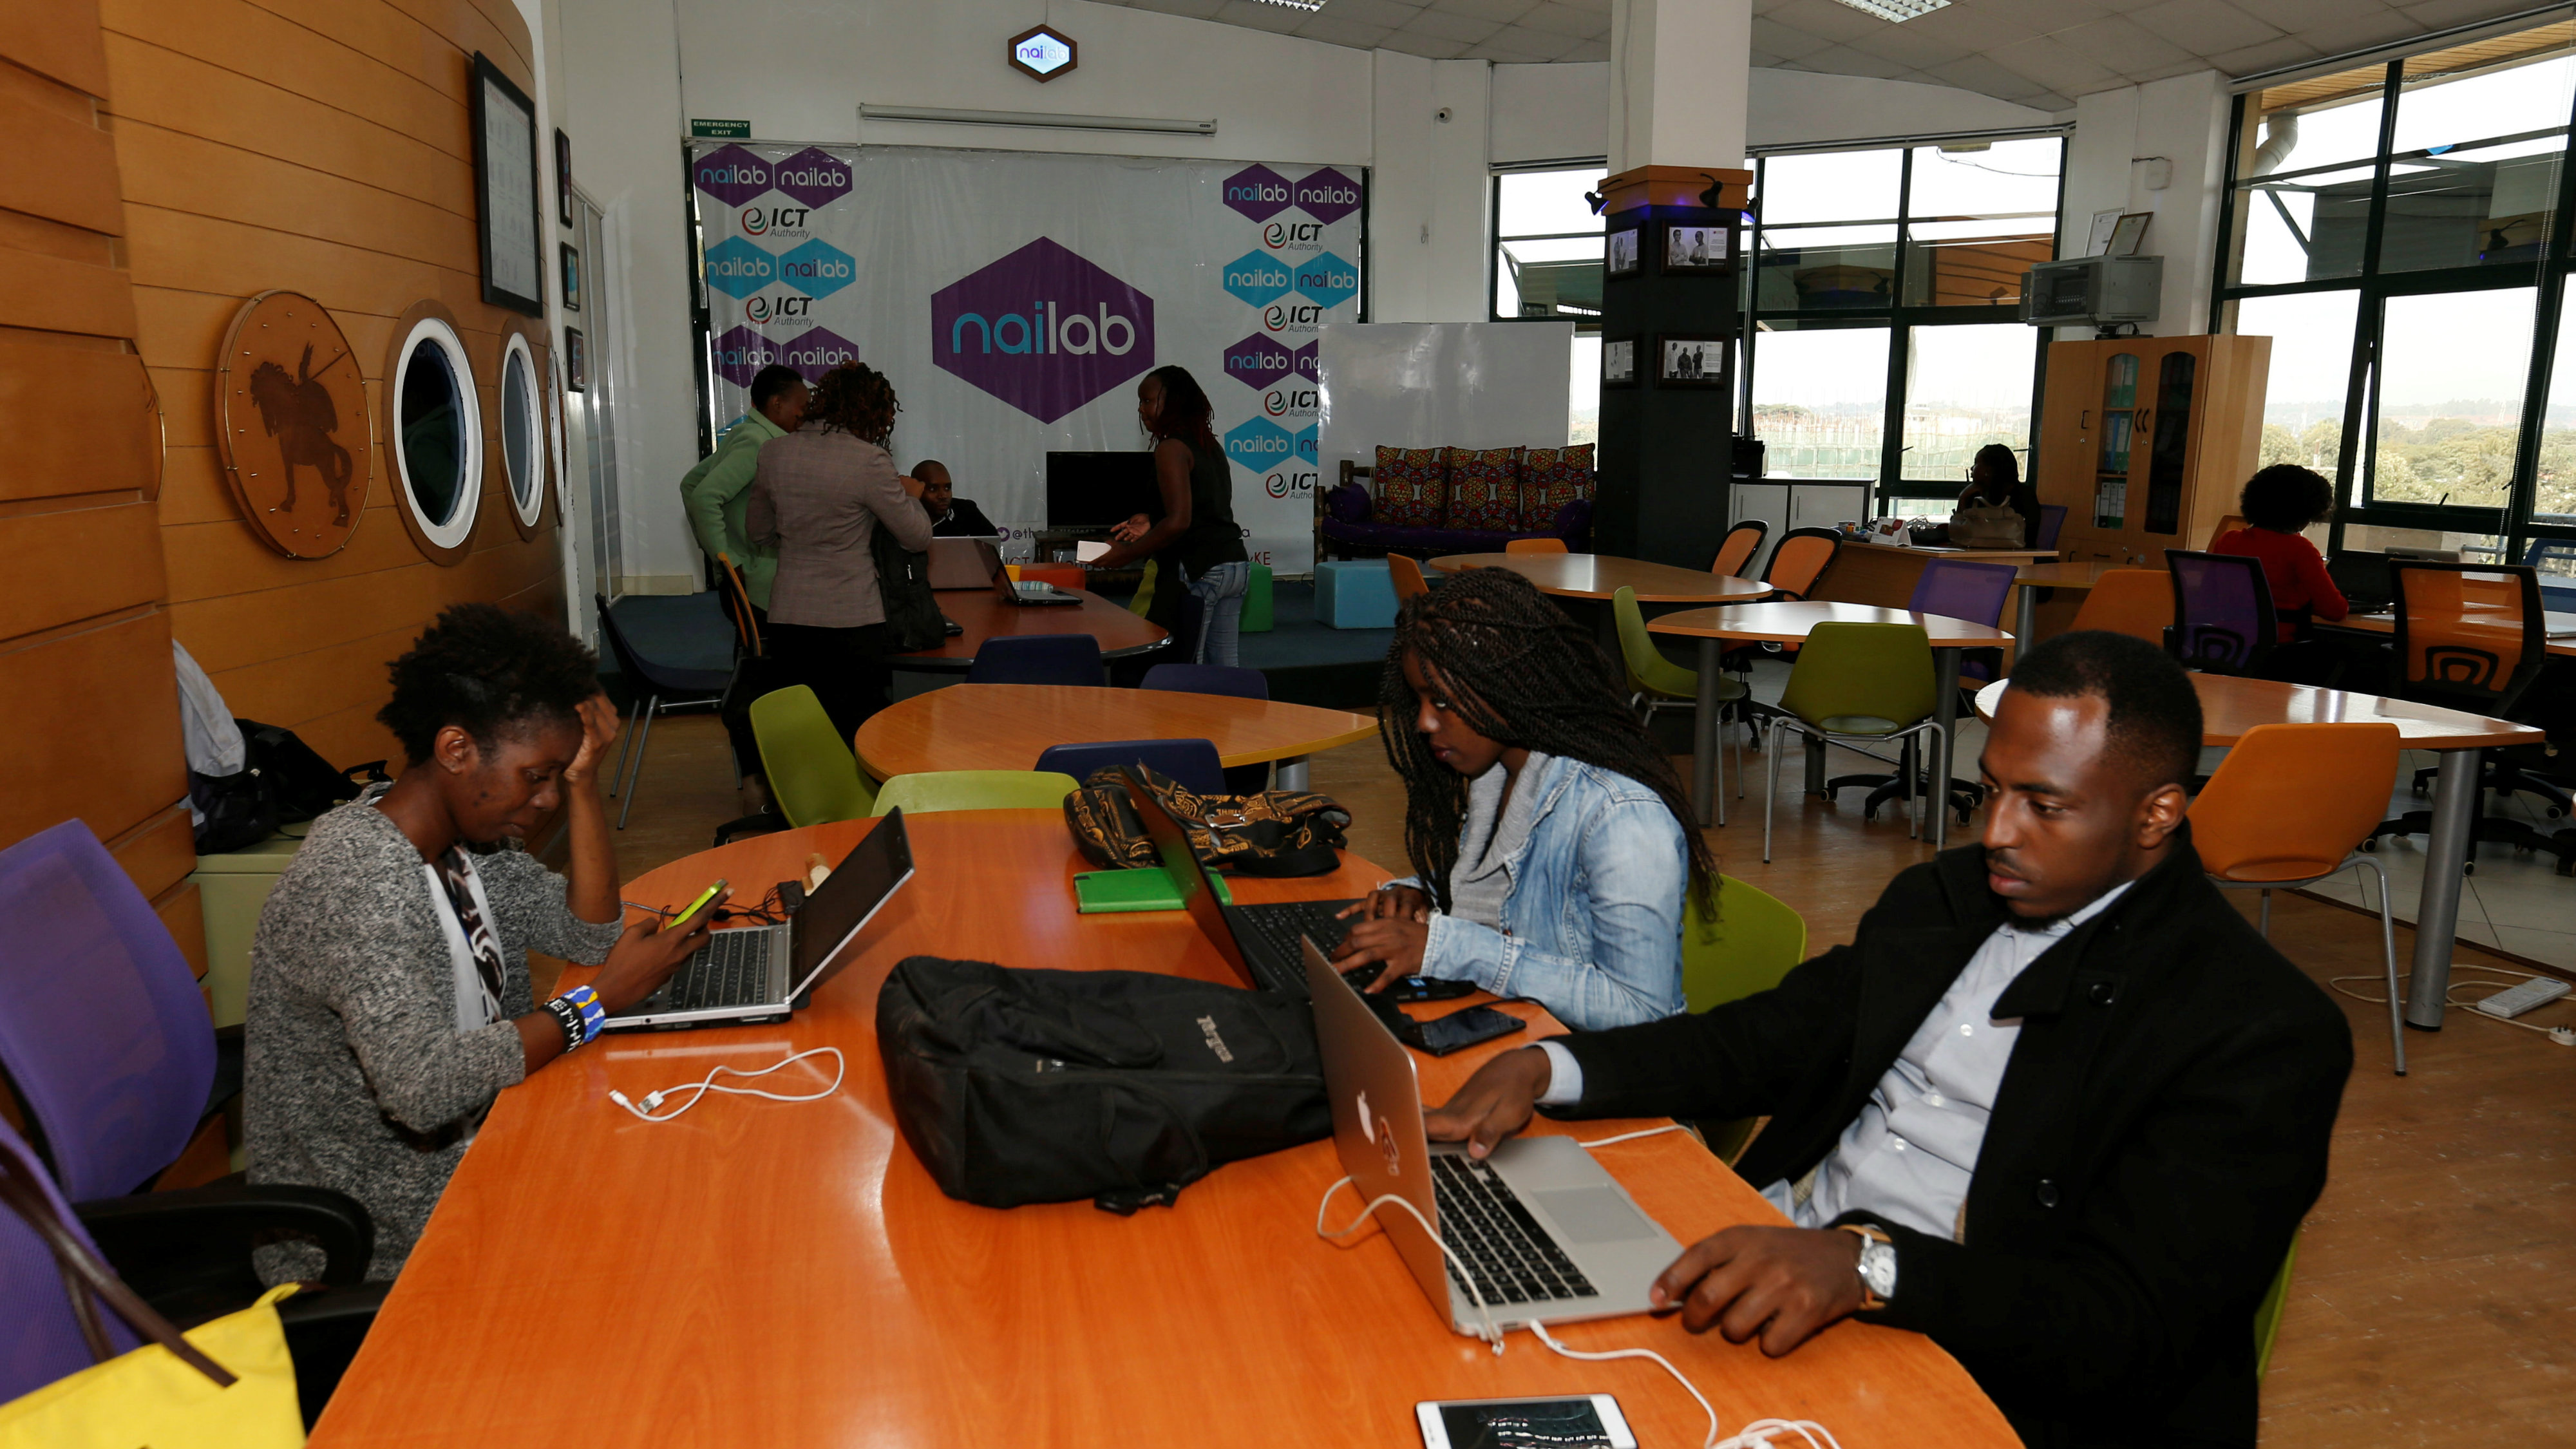 Entrepreneurs work on their projects at Nailab, a Kenyan firm that supports technology startups, behind the latest initiative, which targets entrepreneurs for their ideas on providing sex education through technology and social media in Nairobi, Kenya, July 4, 2016.